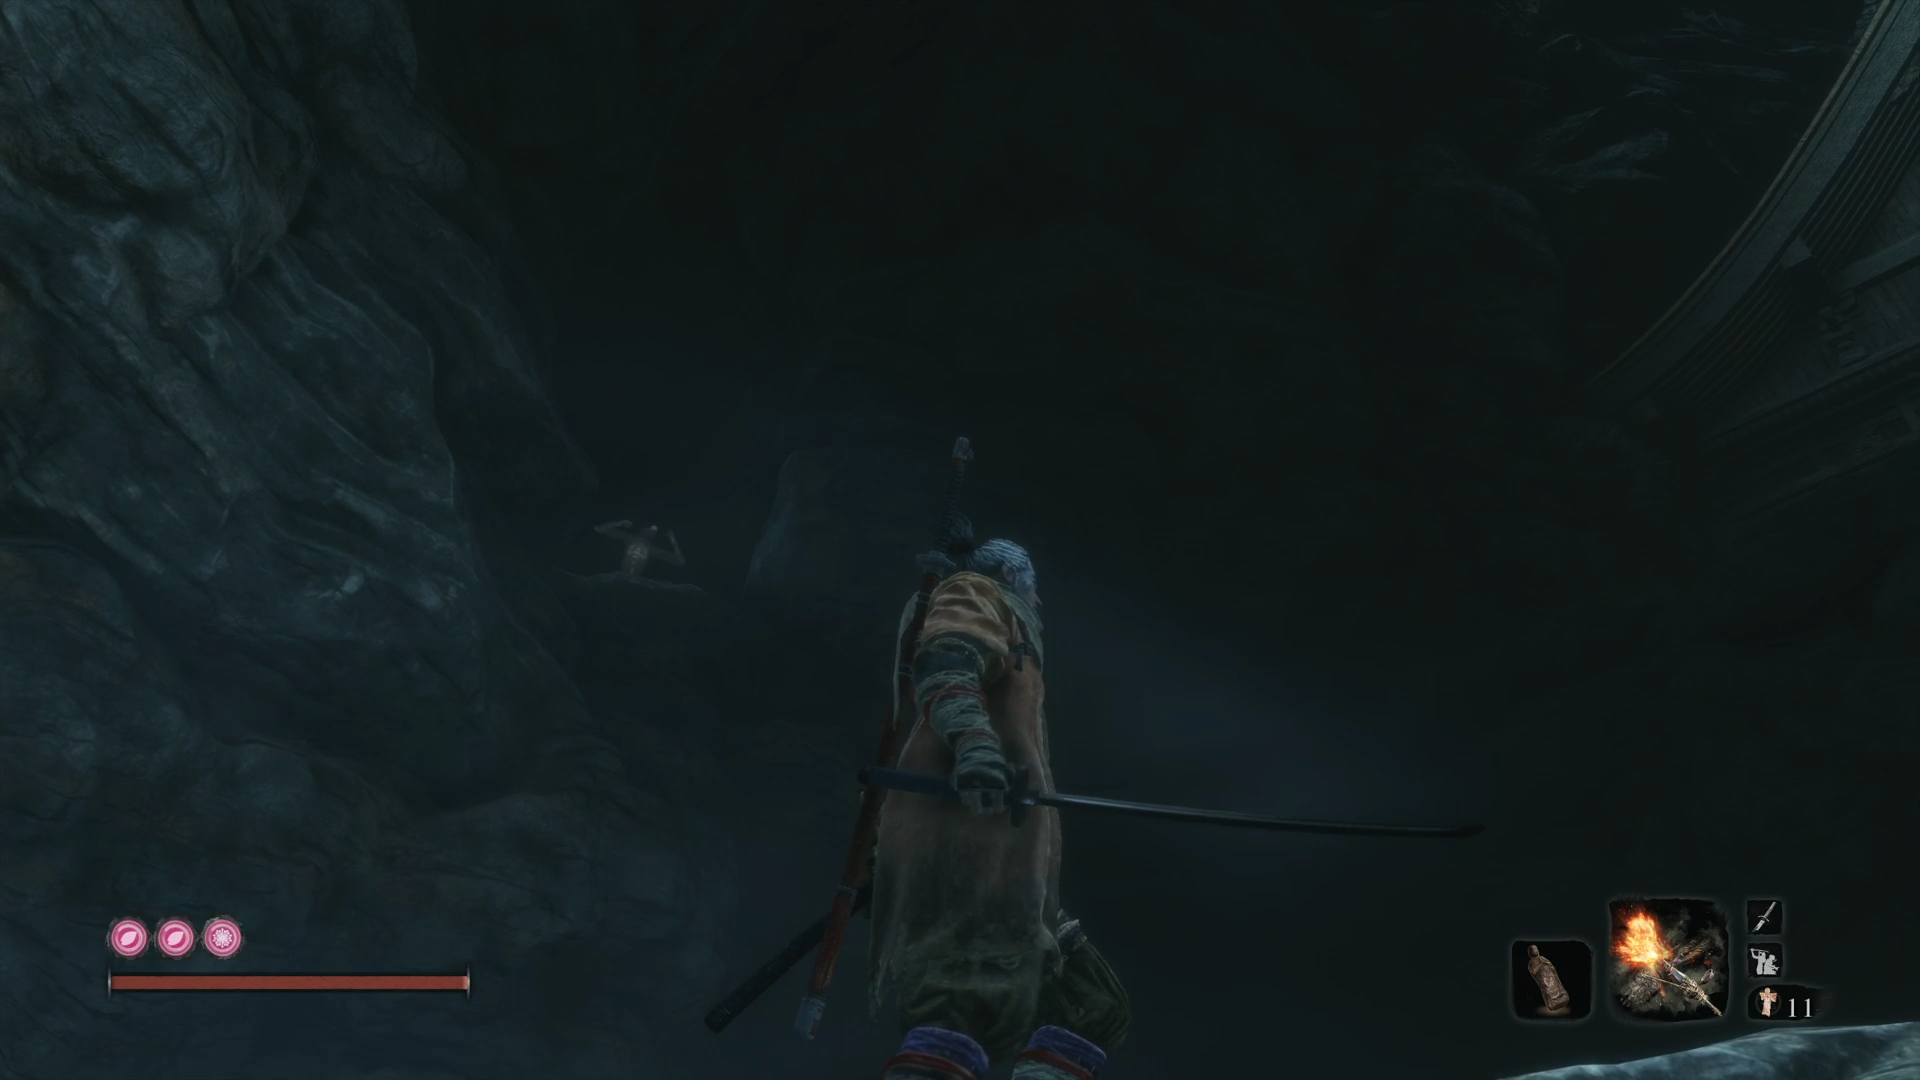 How to get past Giant Snake in cave Sekiro: Shadows Die Twice - Make the monkey dance